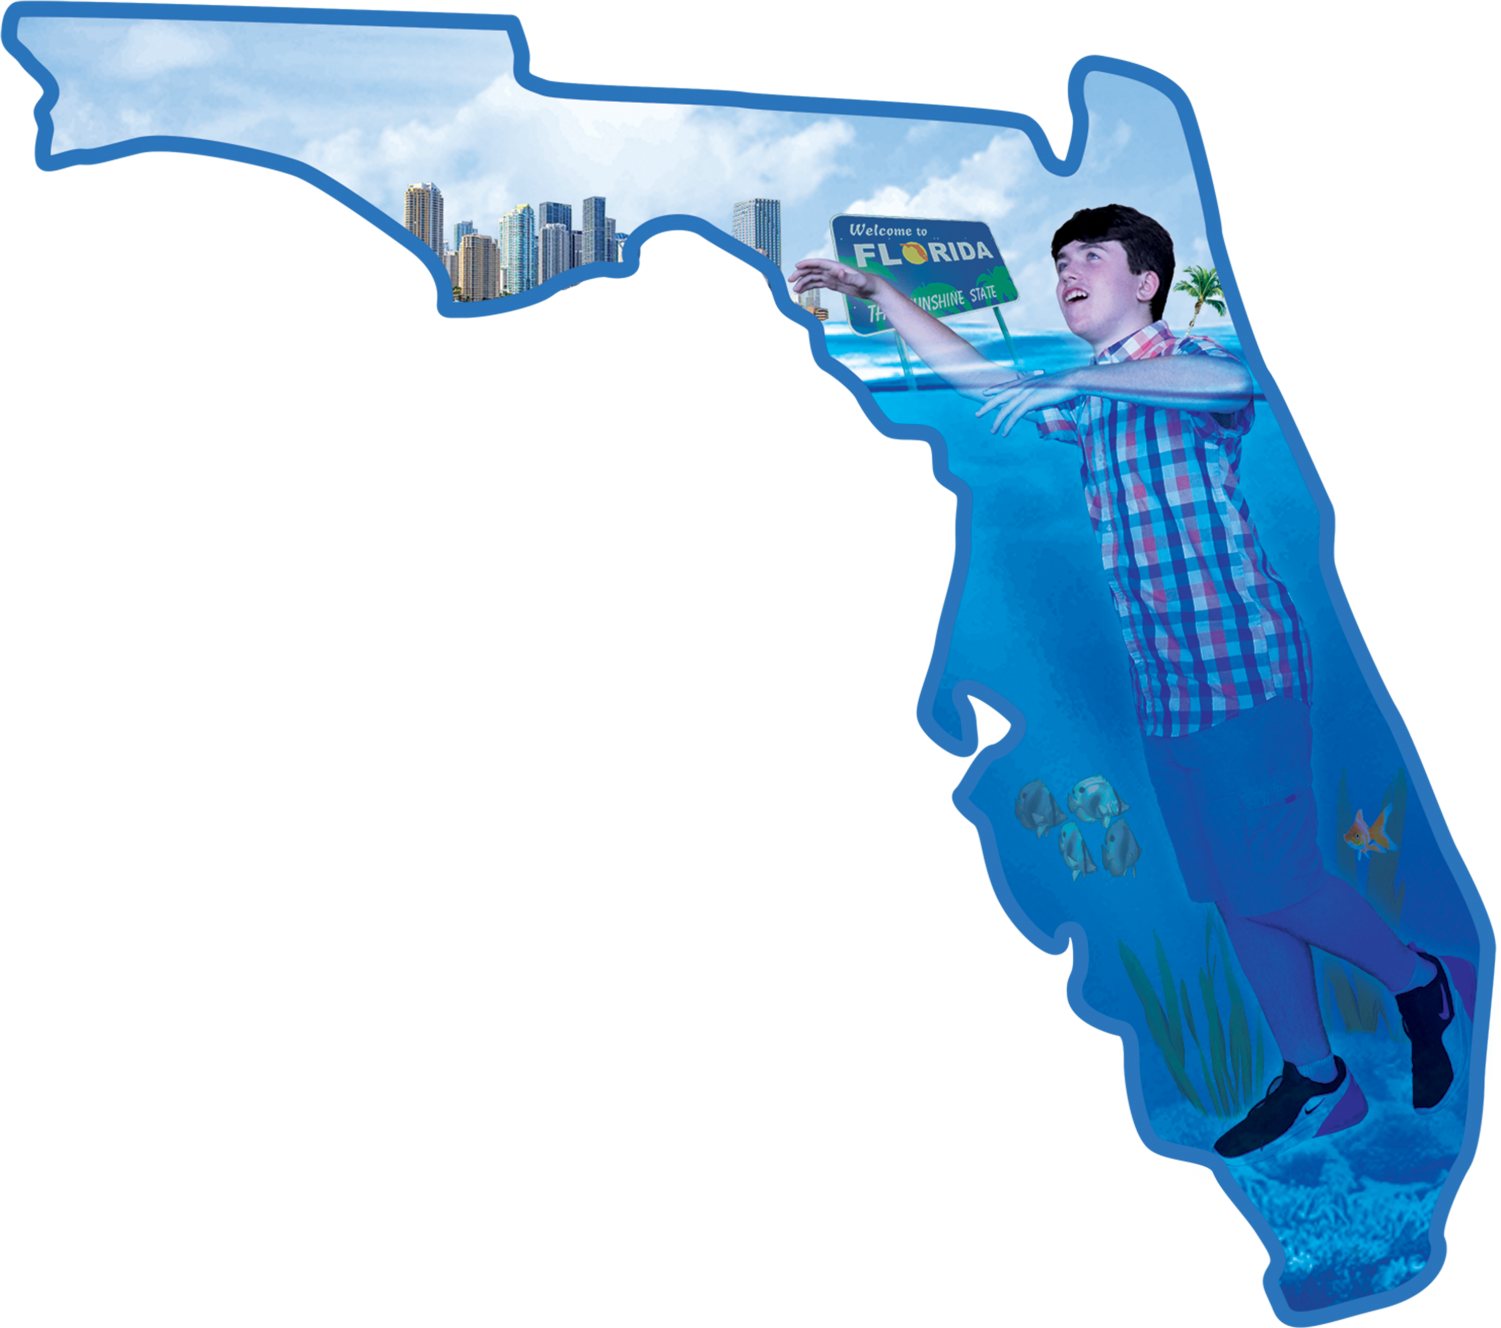 Joseph Brady is depicted trying to swim in a submerged Florida.